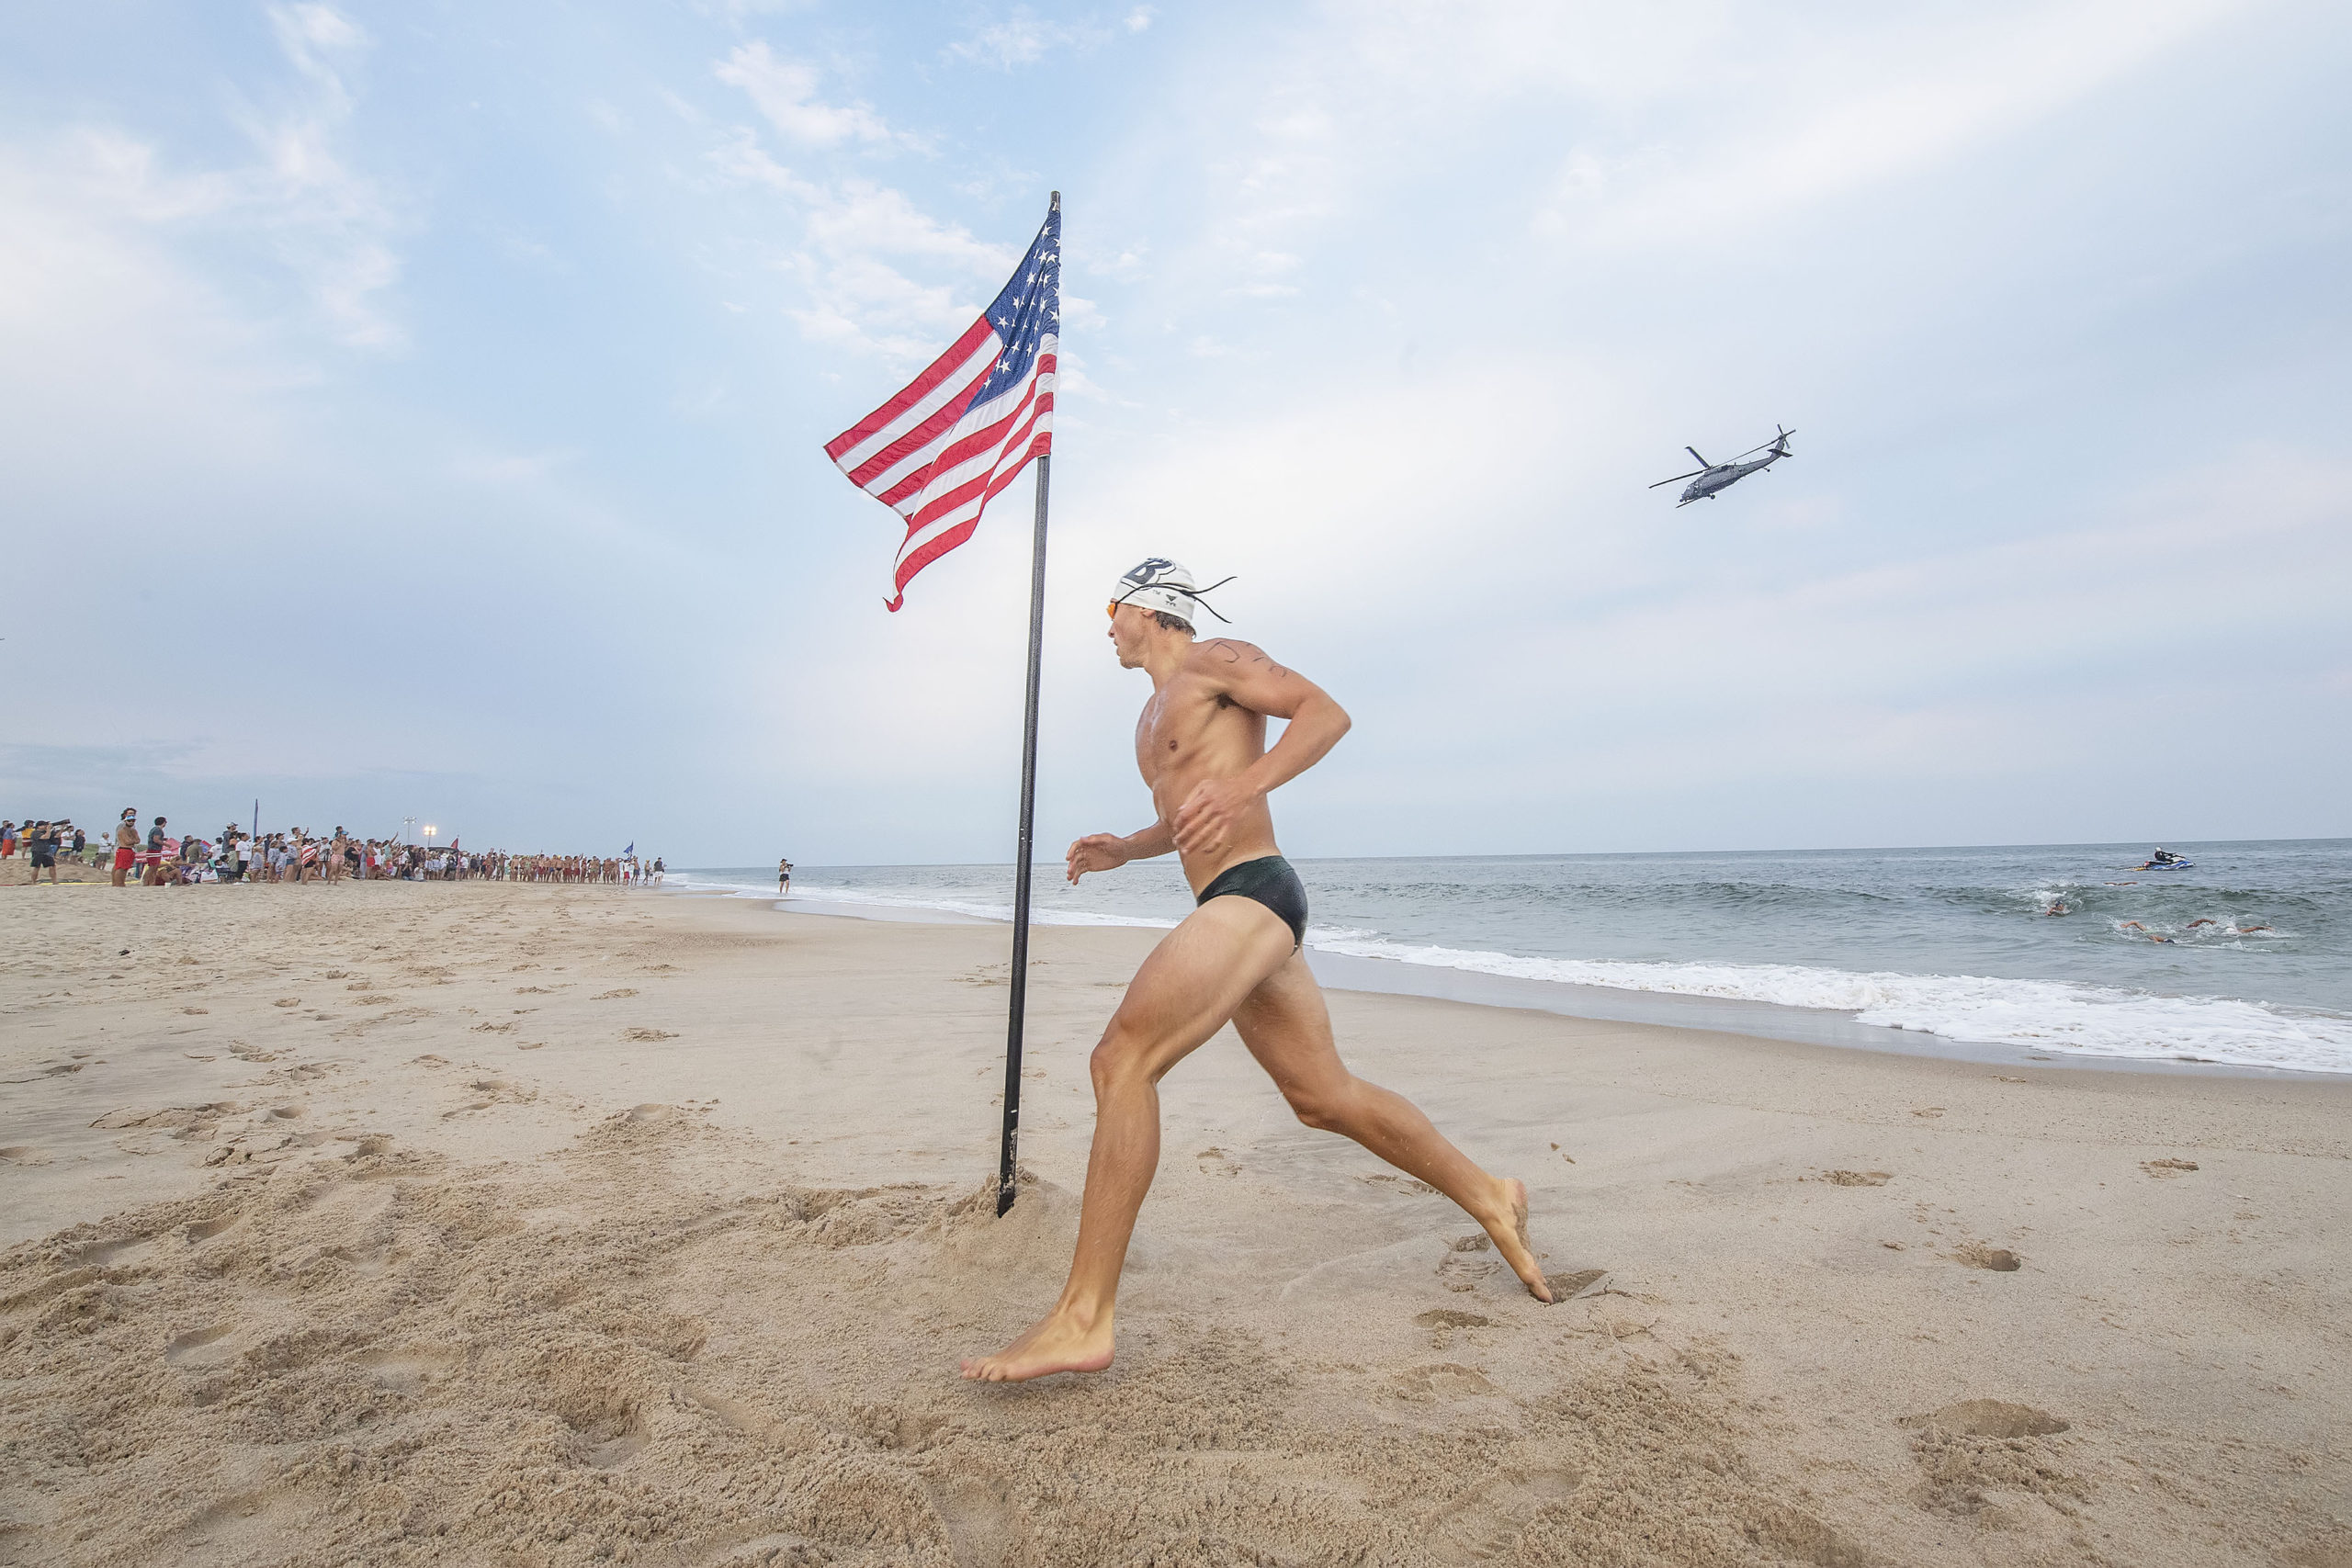 As a military helicopter passes by overhead, a Jones Beach competitor turns the corner at the American flag during the men's run-swim-run competition at East Hampton's Main Beach Lifeguard Competition on July 22.